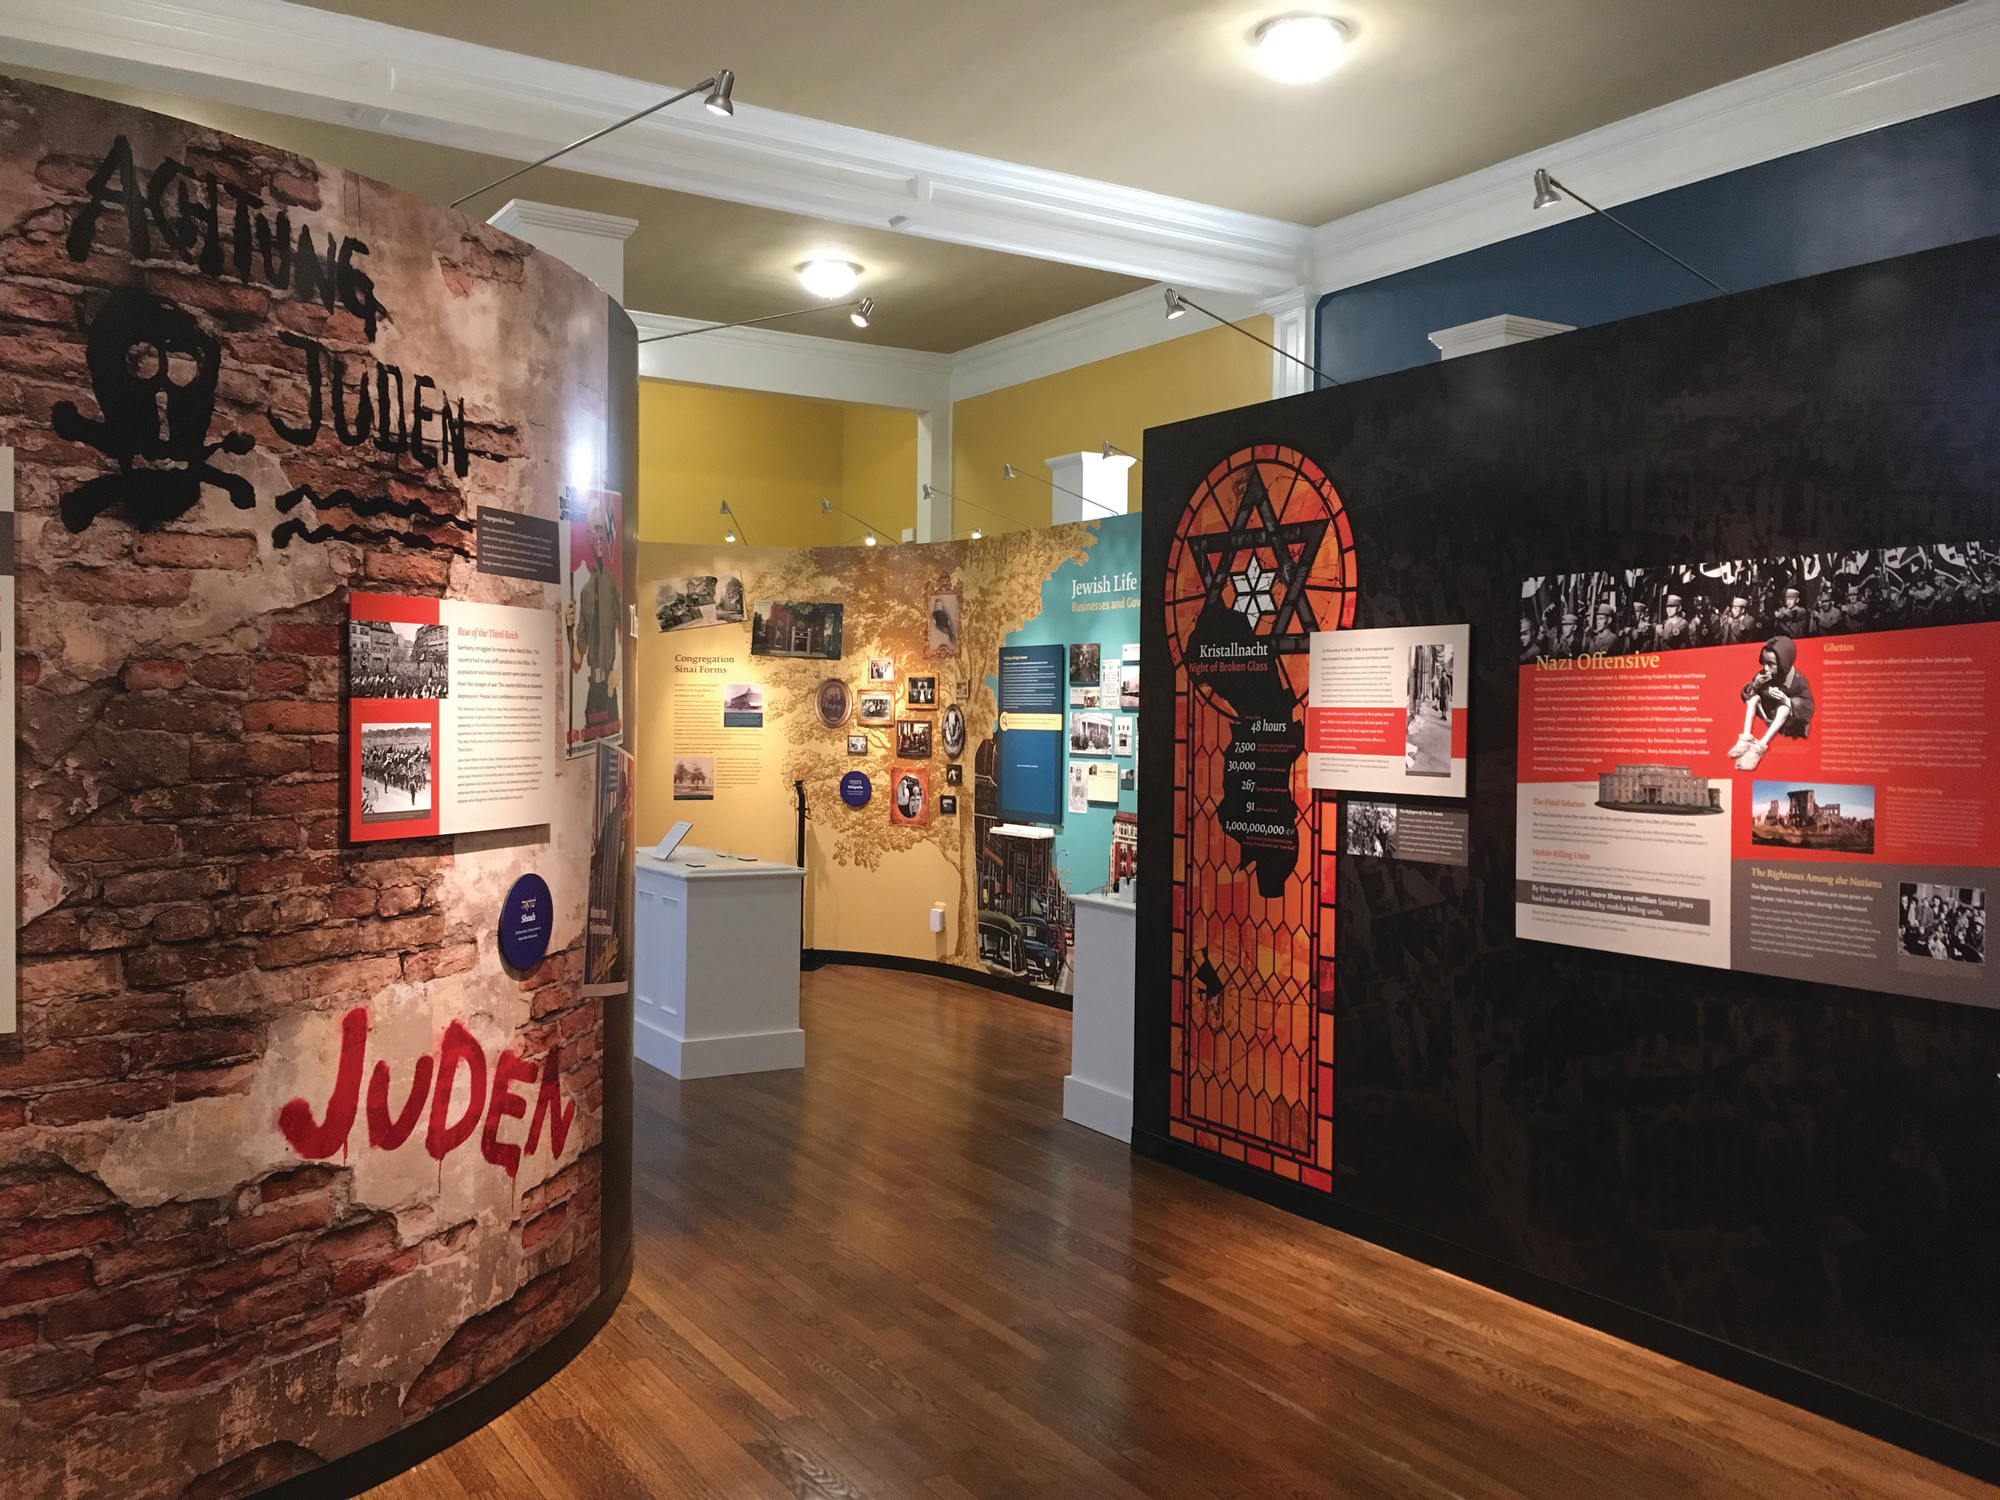 There is an extensive exhibit at Temple Sinai Jewish History Center on the Holocaust and the atrocities performed by the Nazis during World War II.